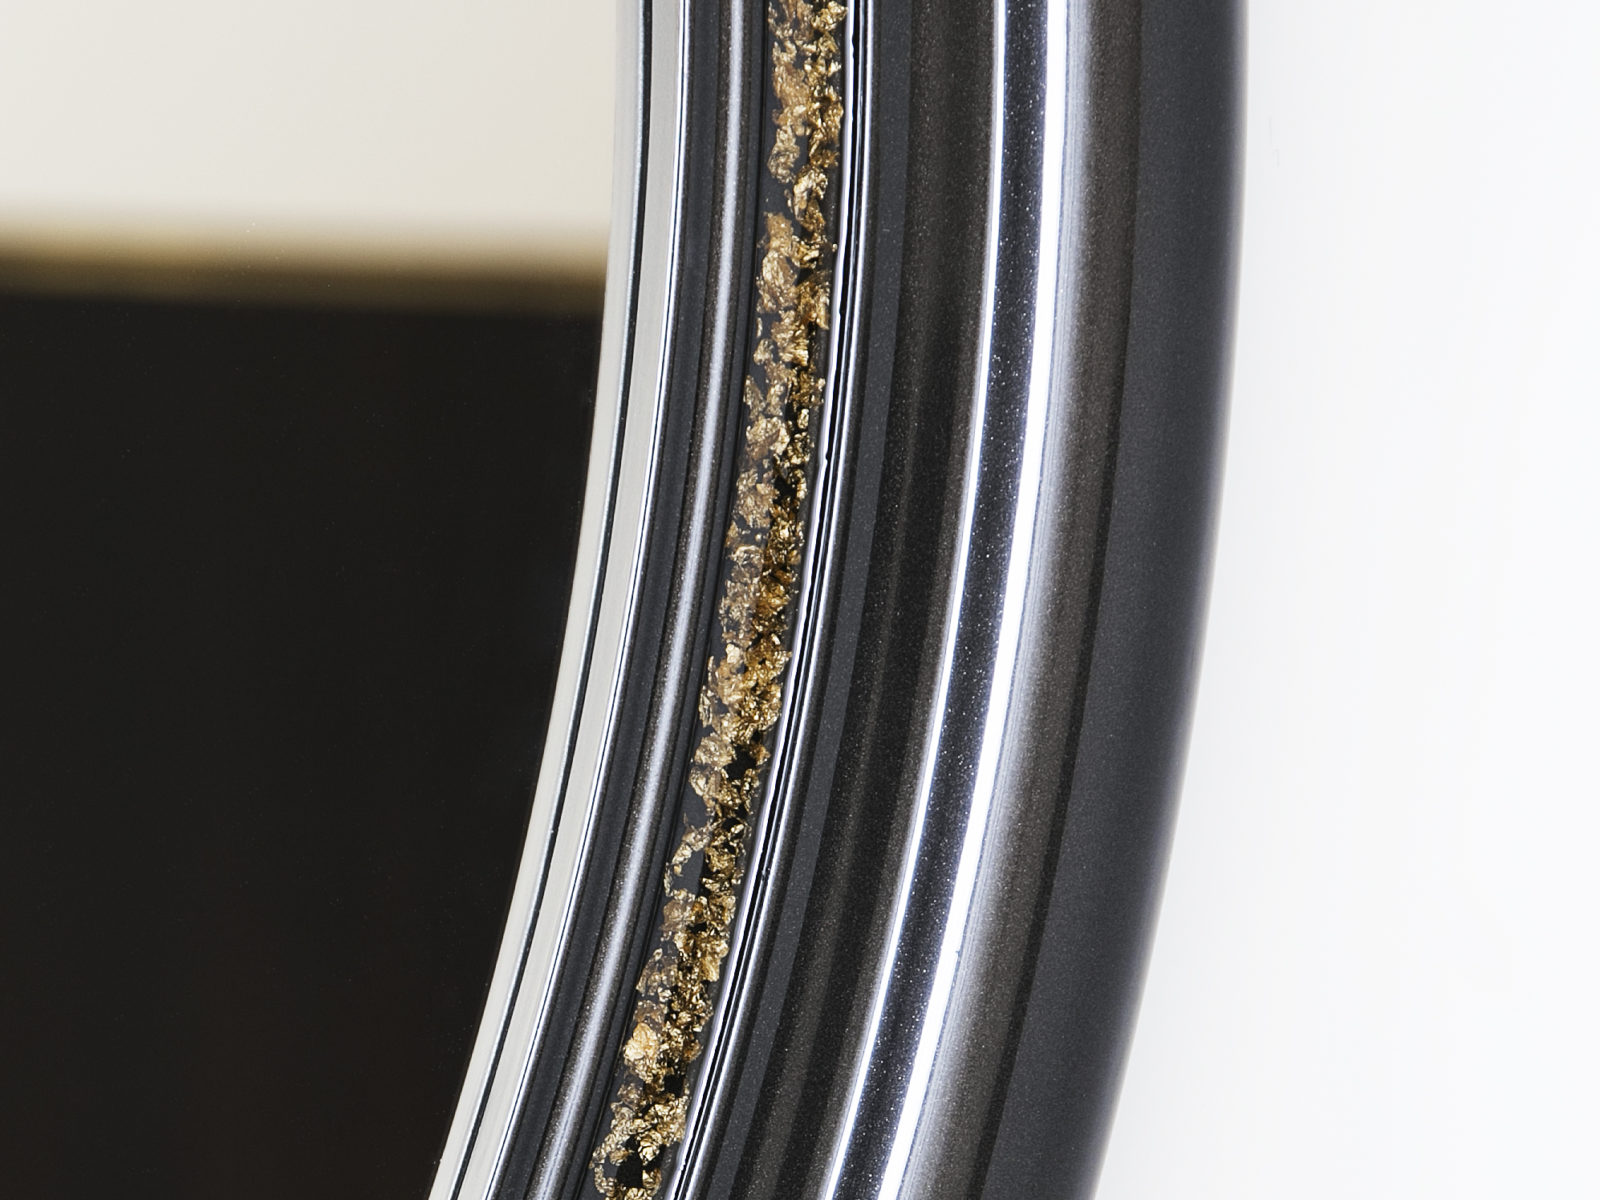 Gold leaf mirror frame detail